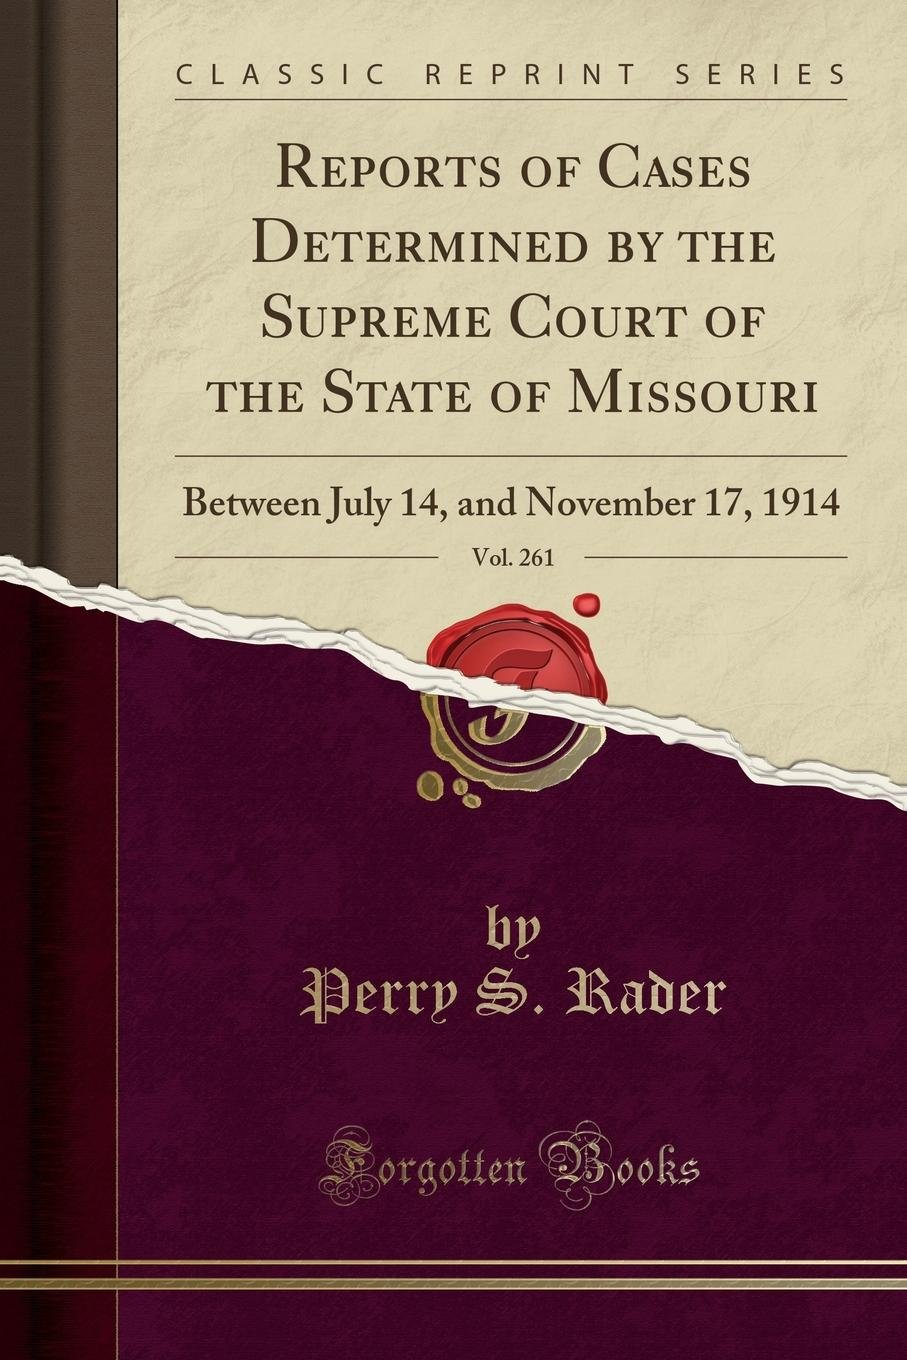 Reports of Cases Determined by the Supreme Court of the State of Missouri, Vol. 261: Between July 14, and November 17, 1914 (Classic Reprint) PDF